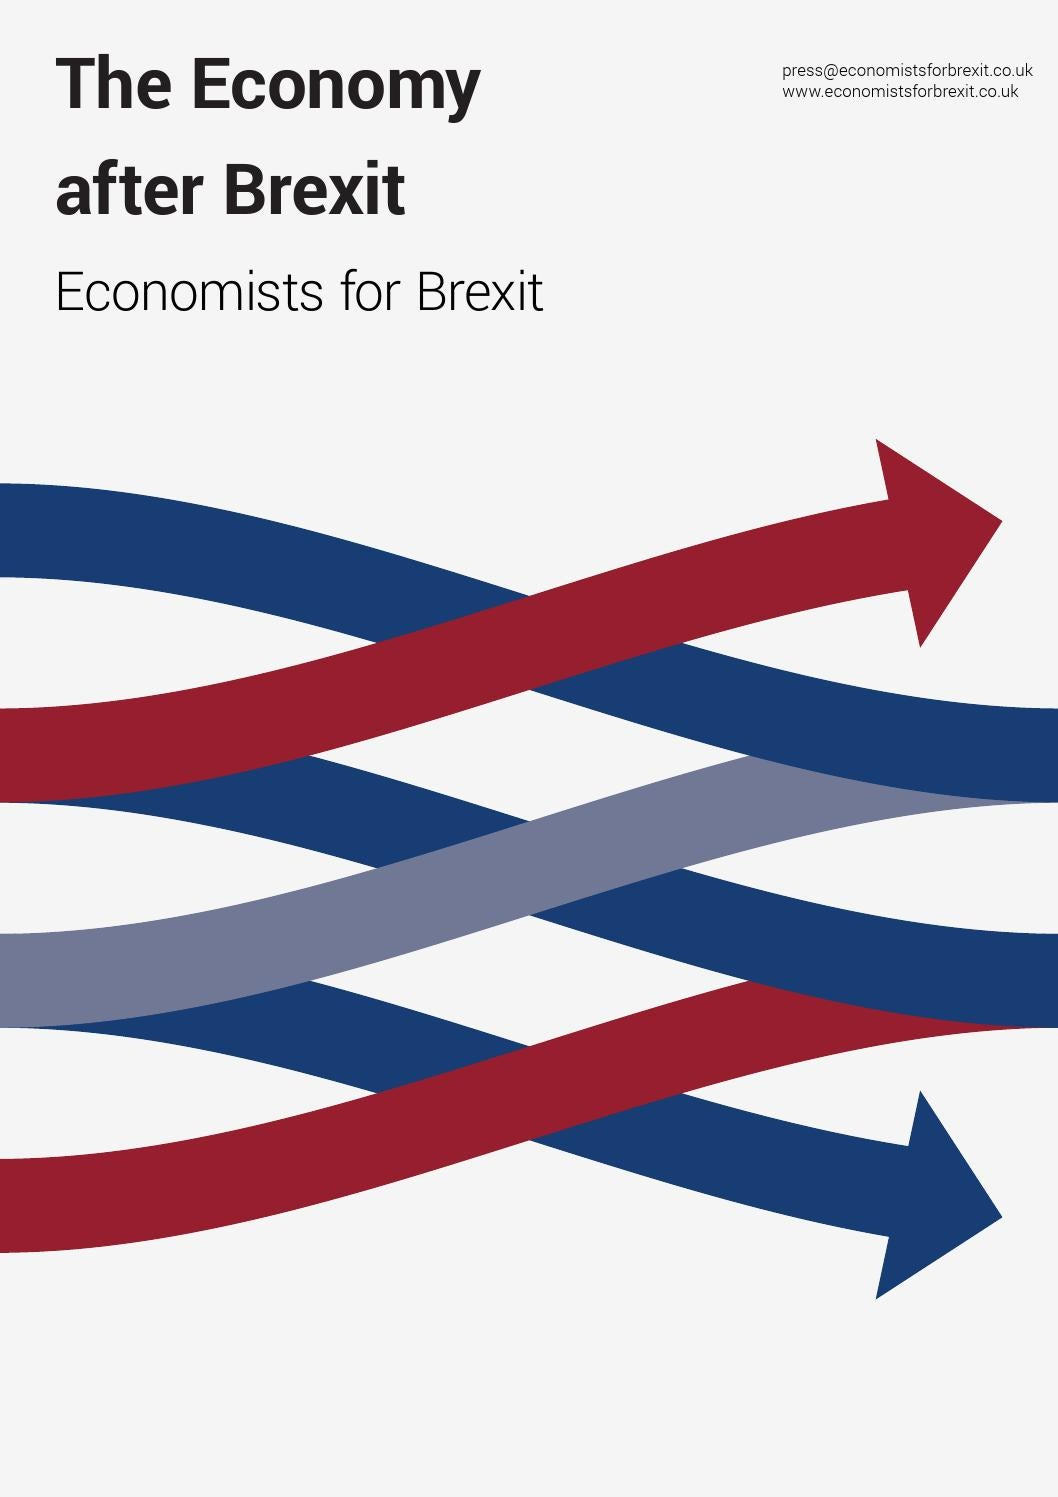 Economists for Brexit - The Economy after Brexit by EFBKL